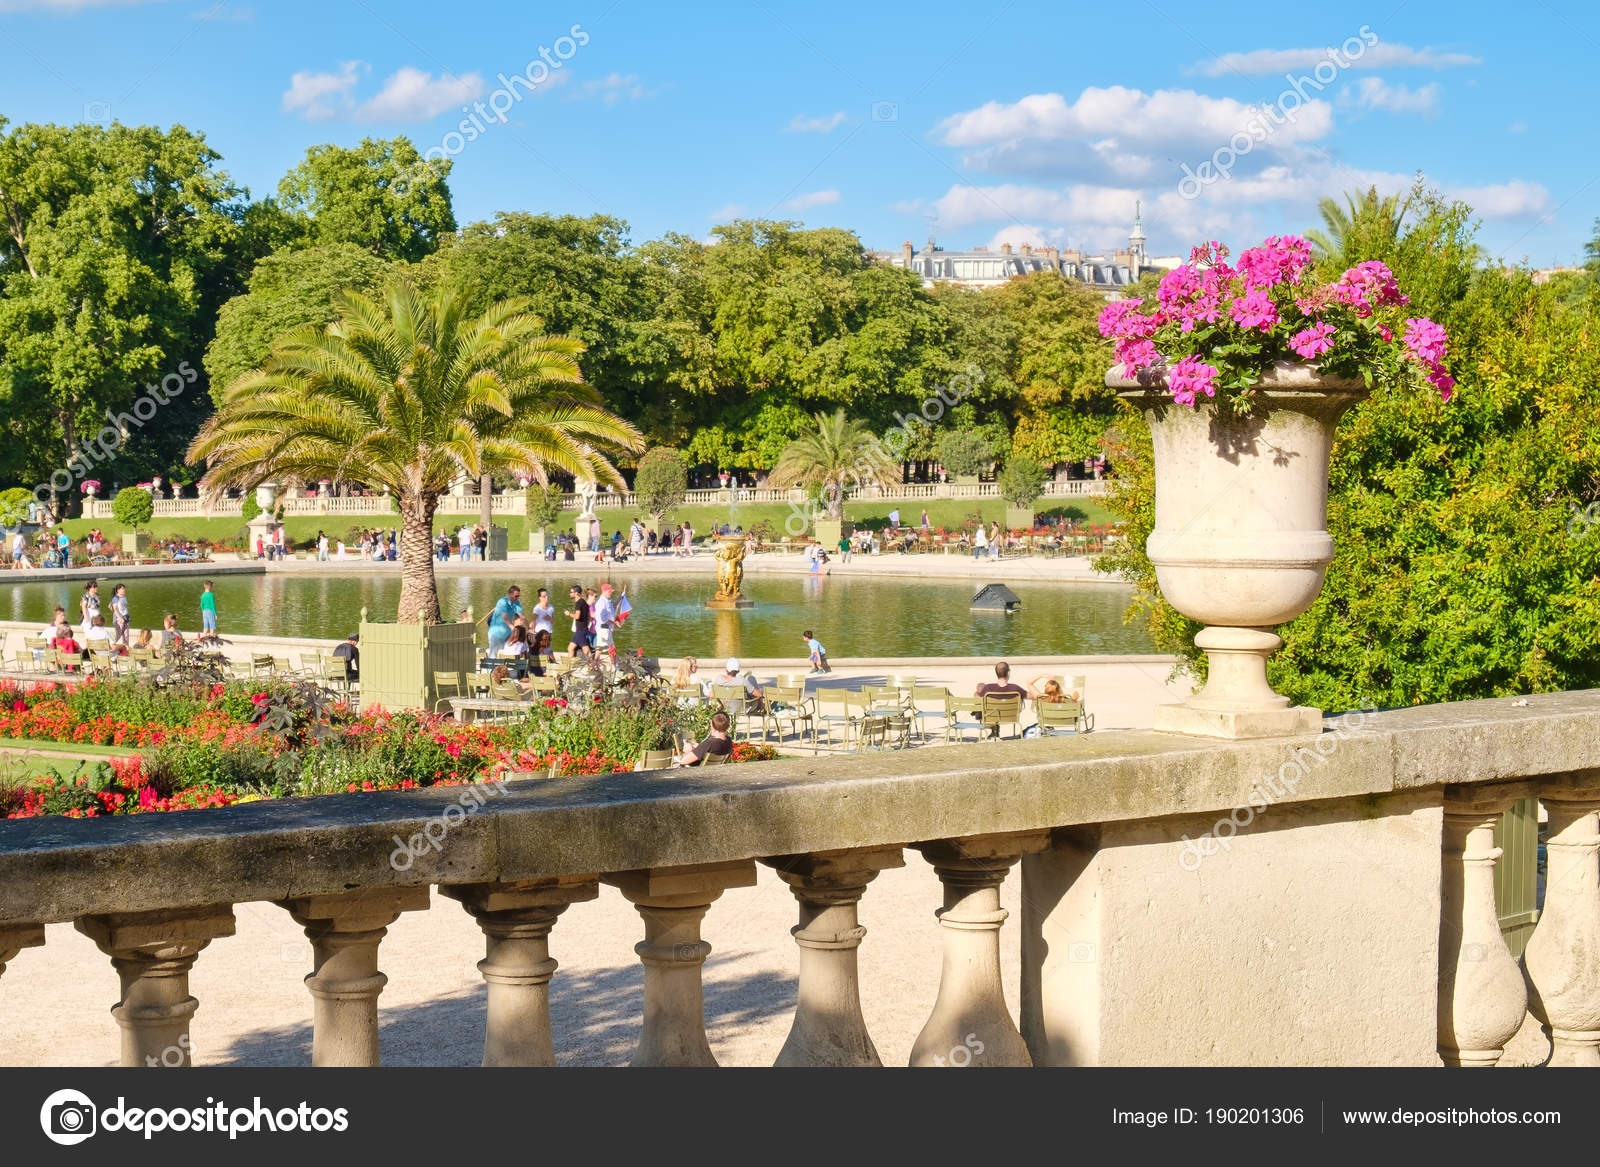 le jardin du luxembourg paris une journ e d t belle photo ditoriale kmiragaya 190201306. Black Bedroom Furniture Sets. Home Design Ideas